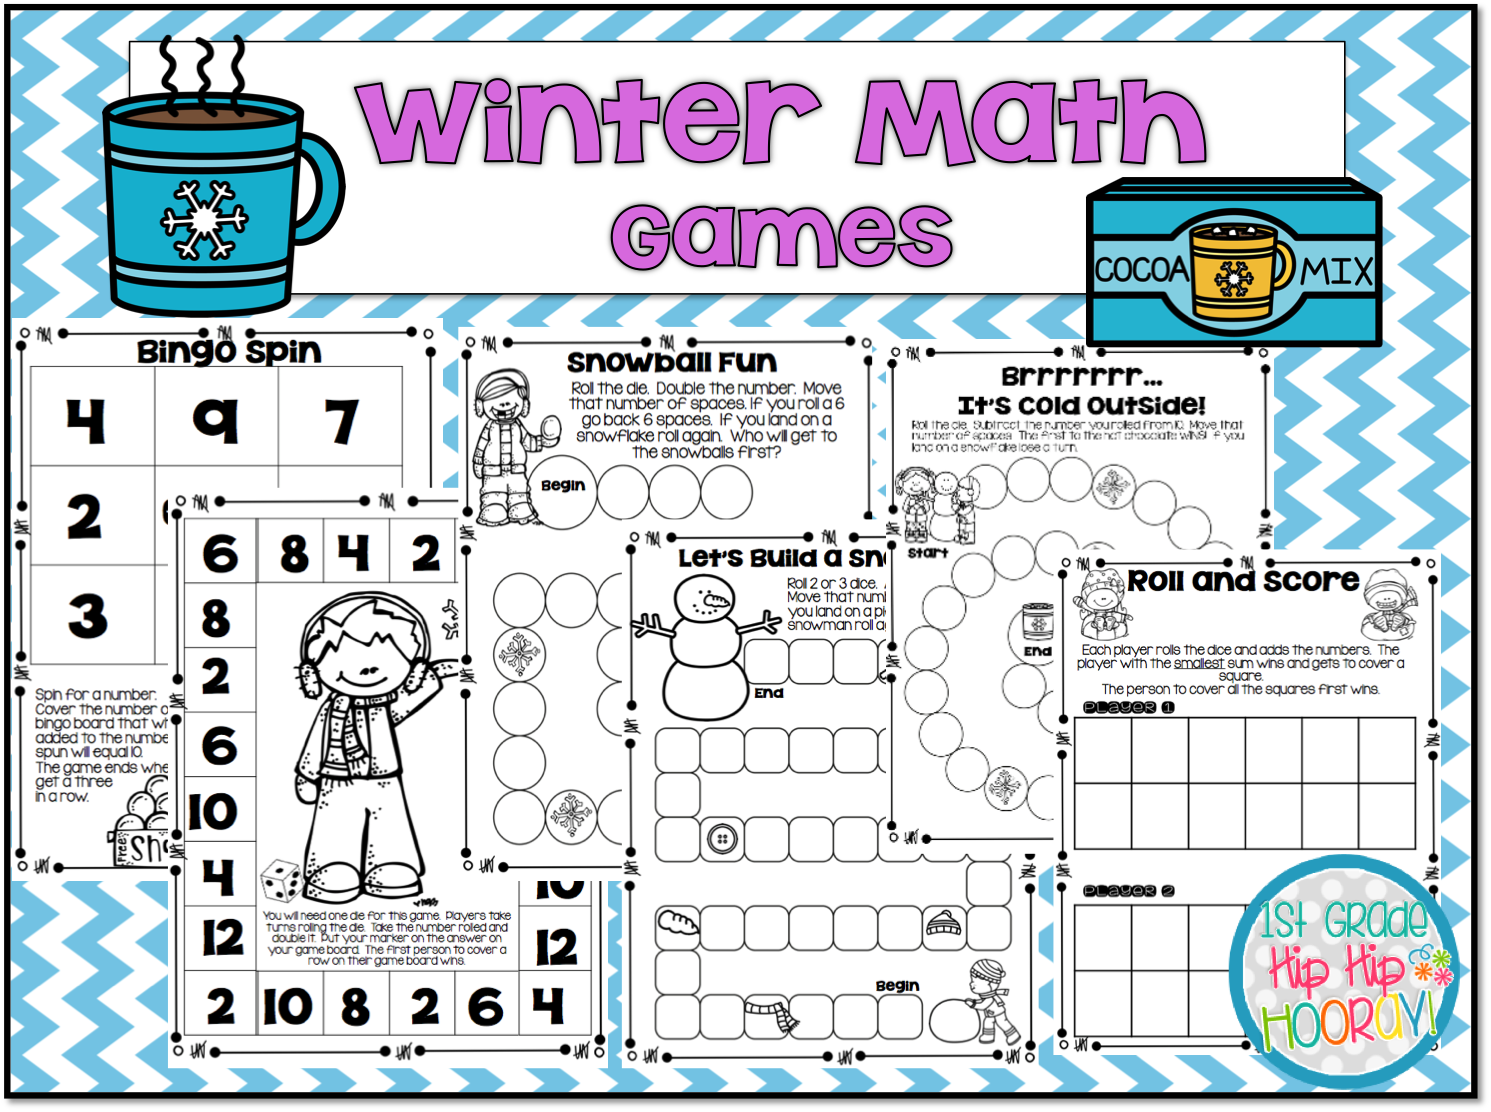 1st Grade Hip Hip Hooray Math Games Addition And